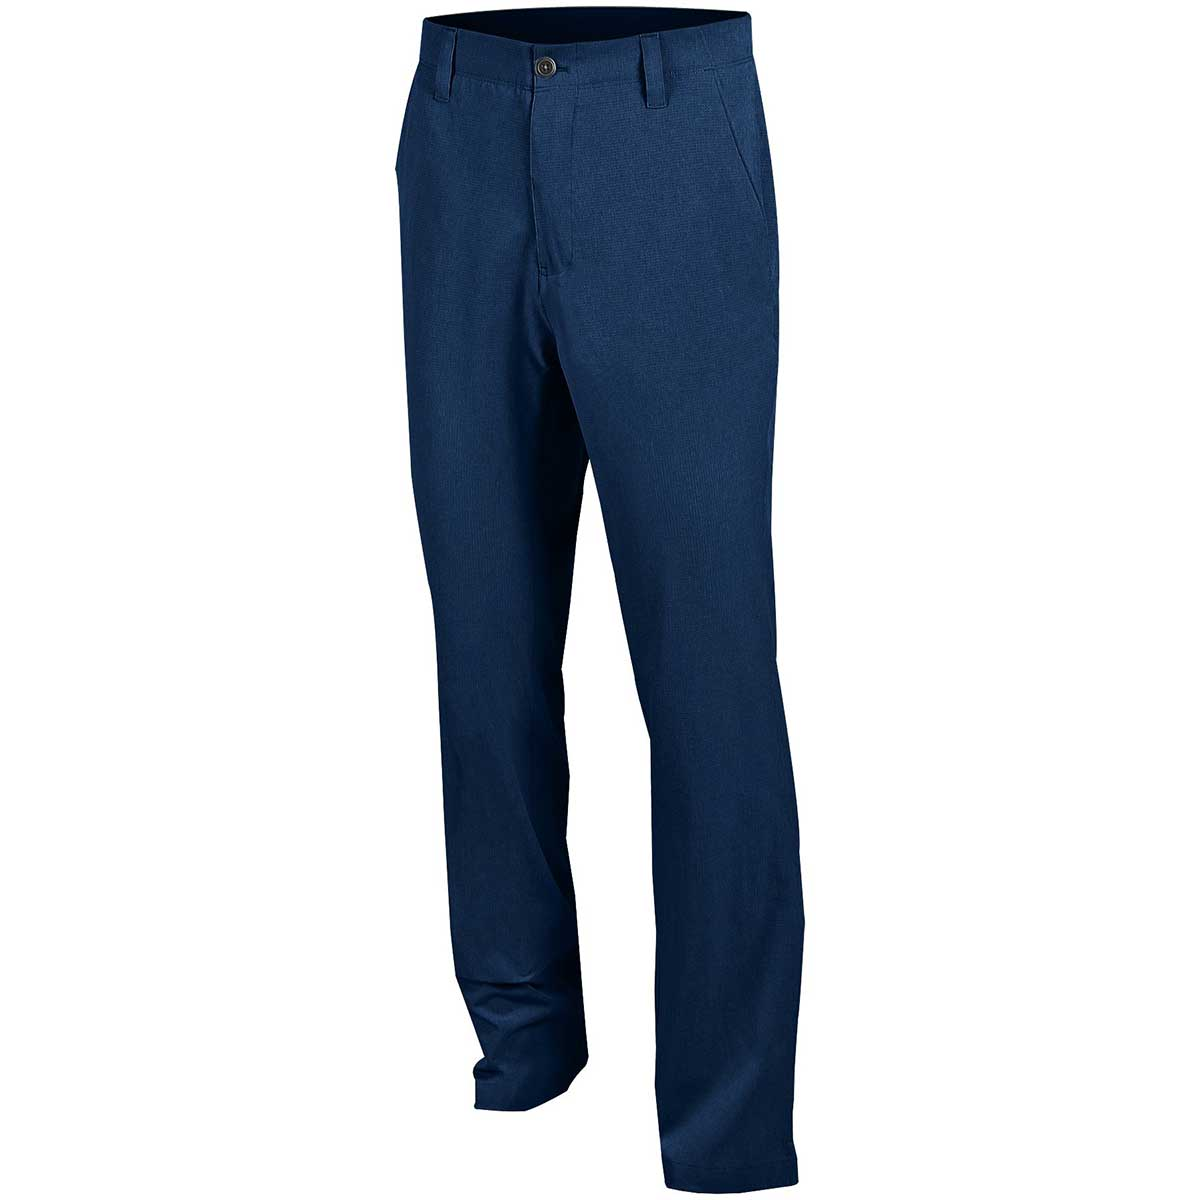 Under Armour Men's 2019 Match Play Navy Pant